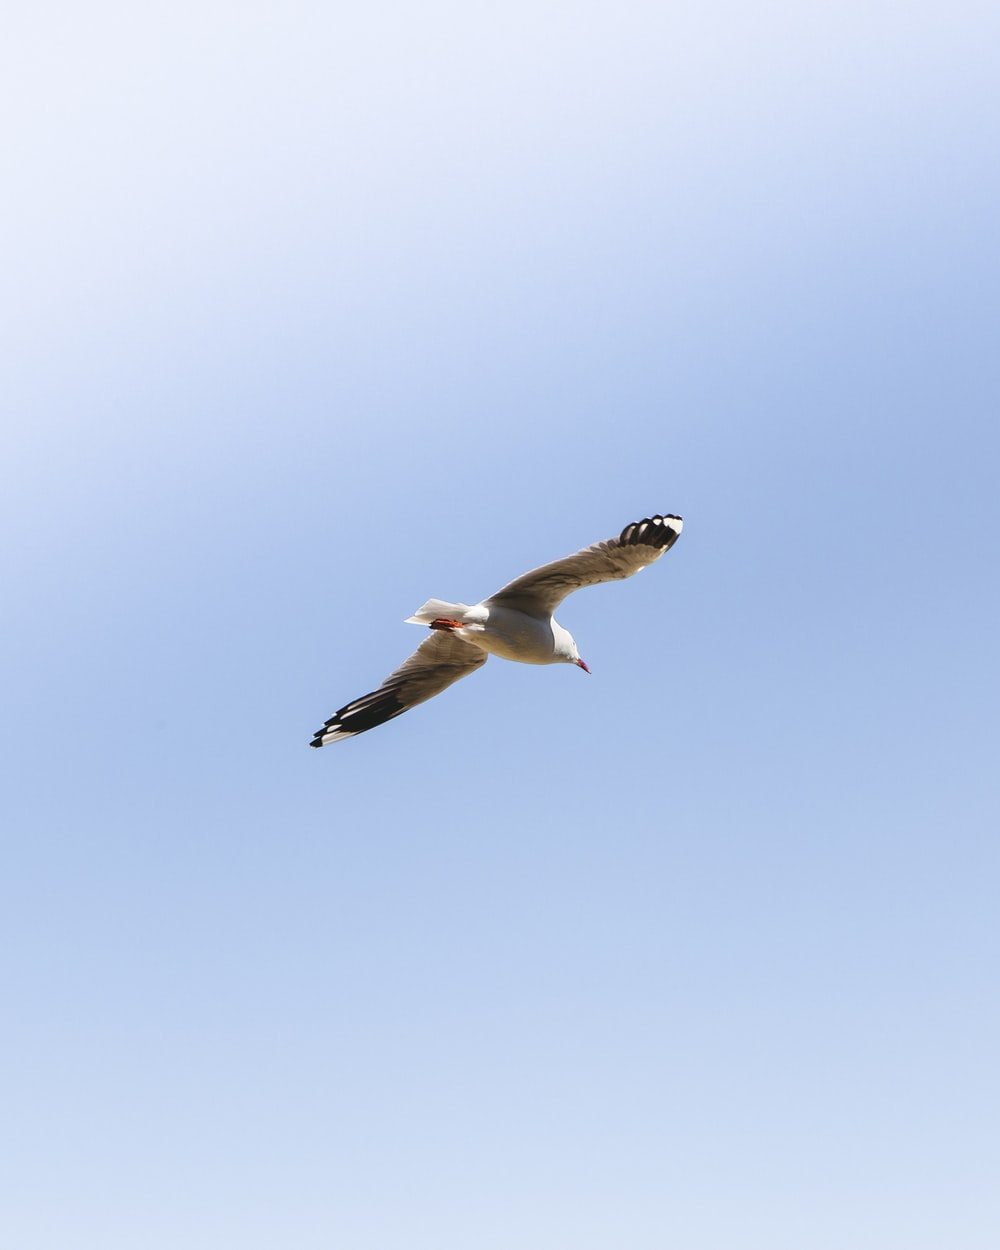 low angle view of seagull flies